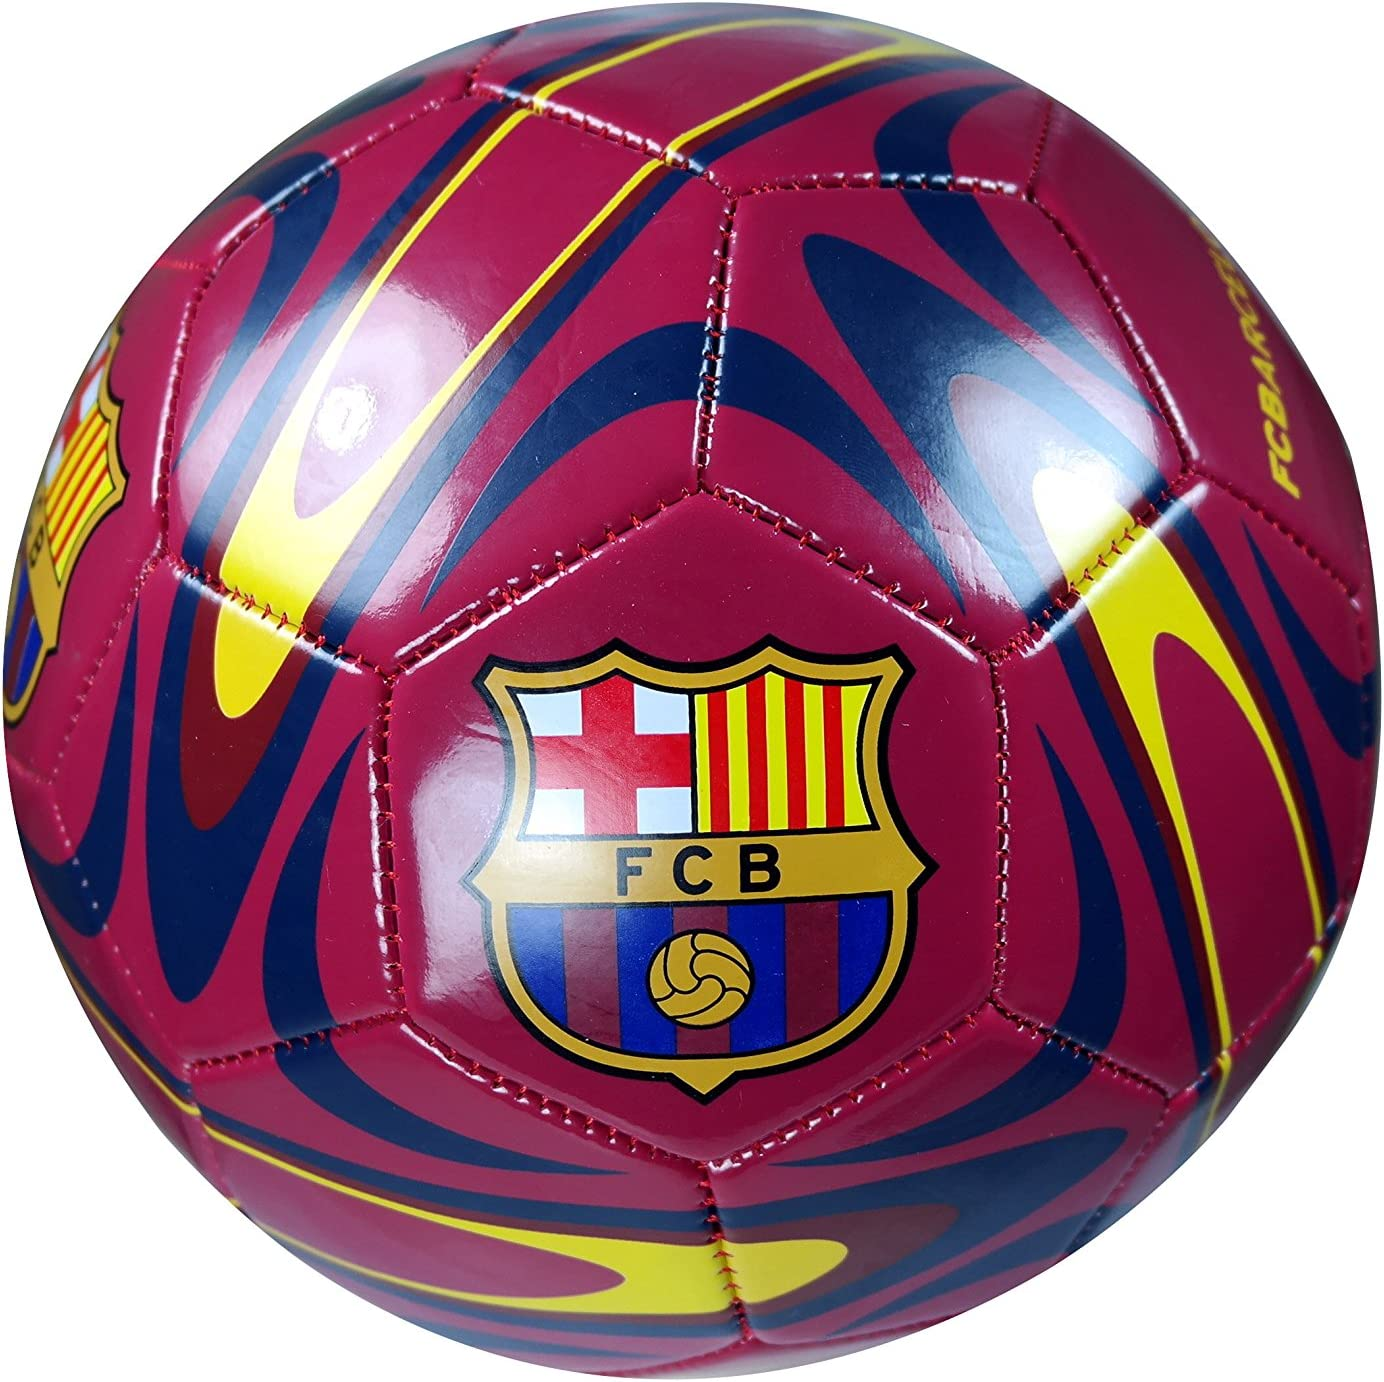 FC Barcelona Authentic Official Licensed Soccer Ball Size 5-02-9